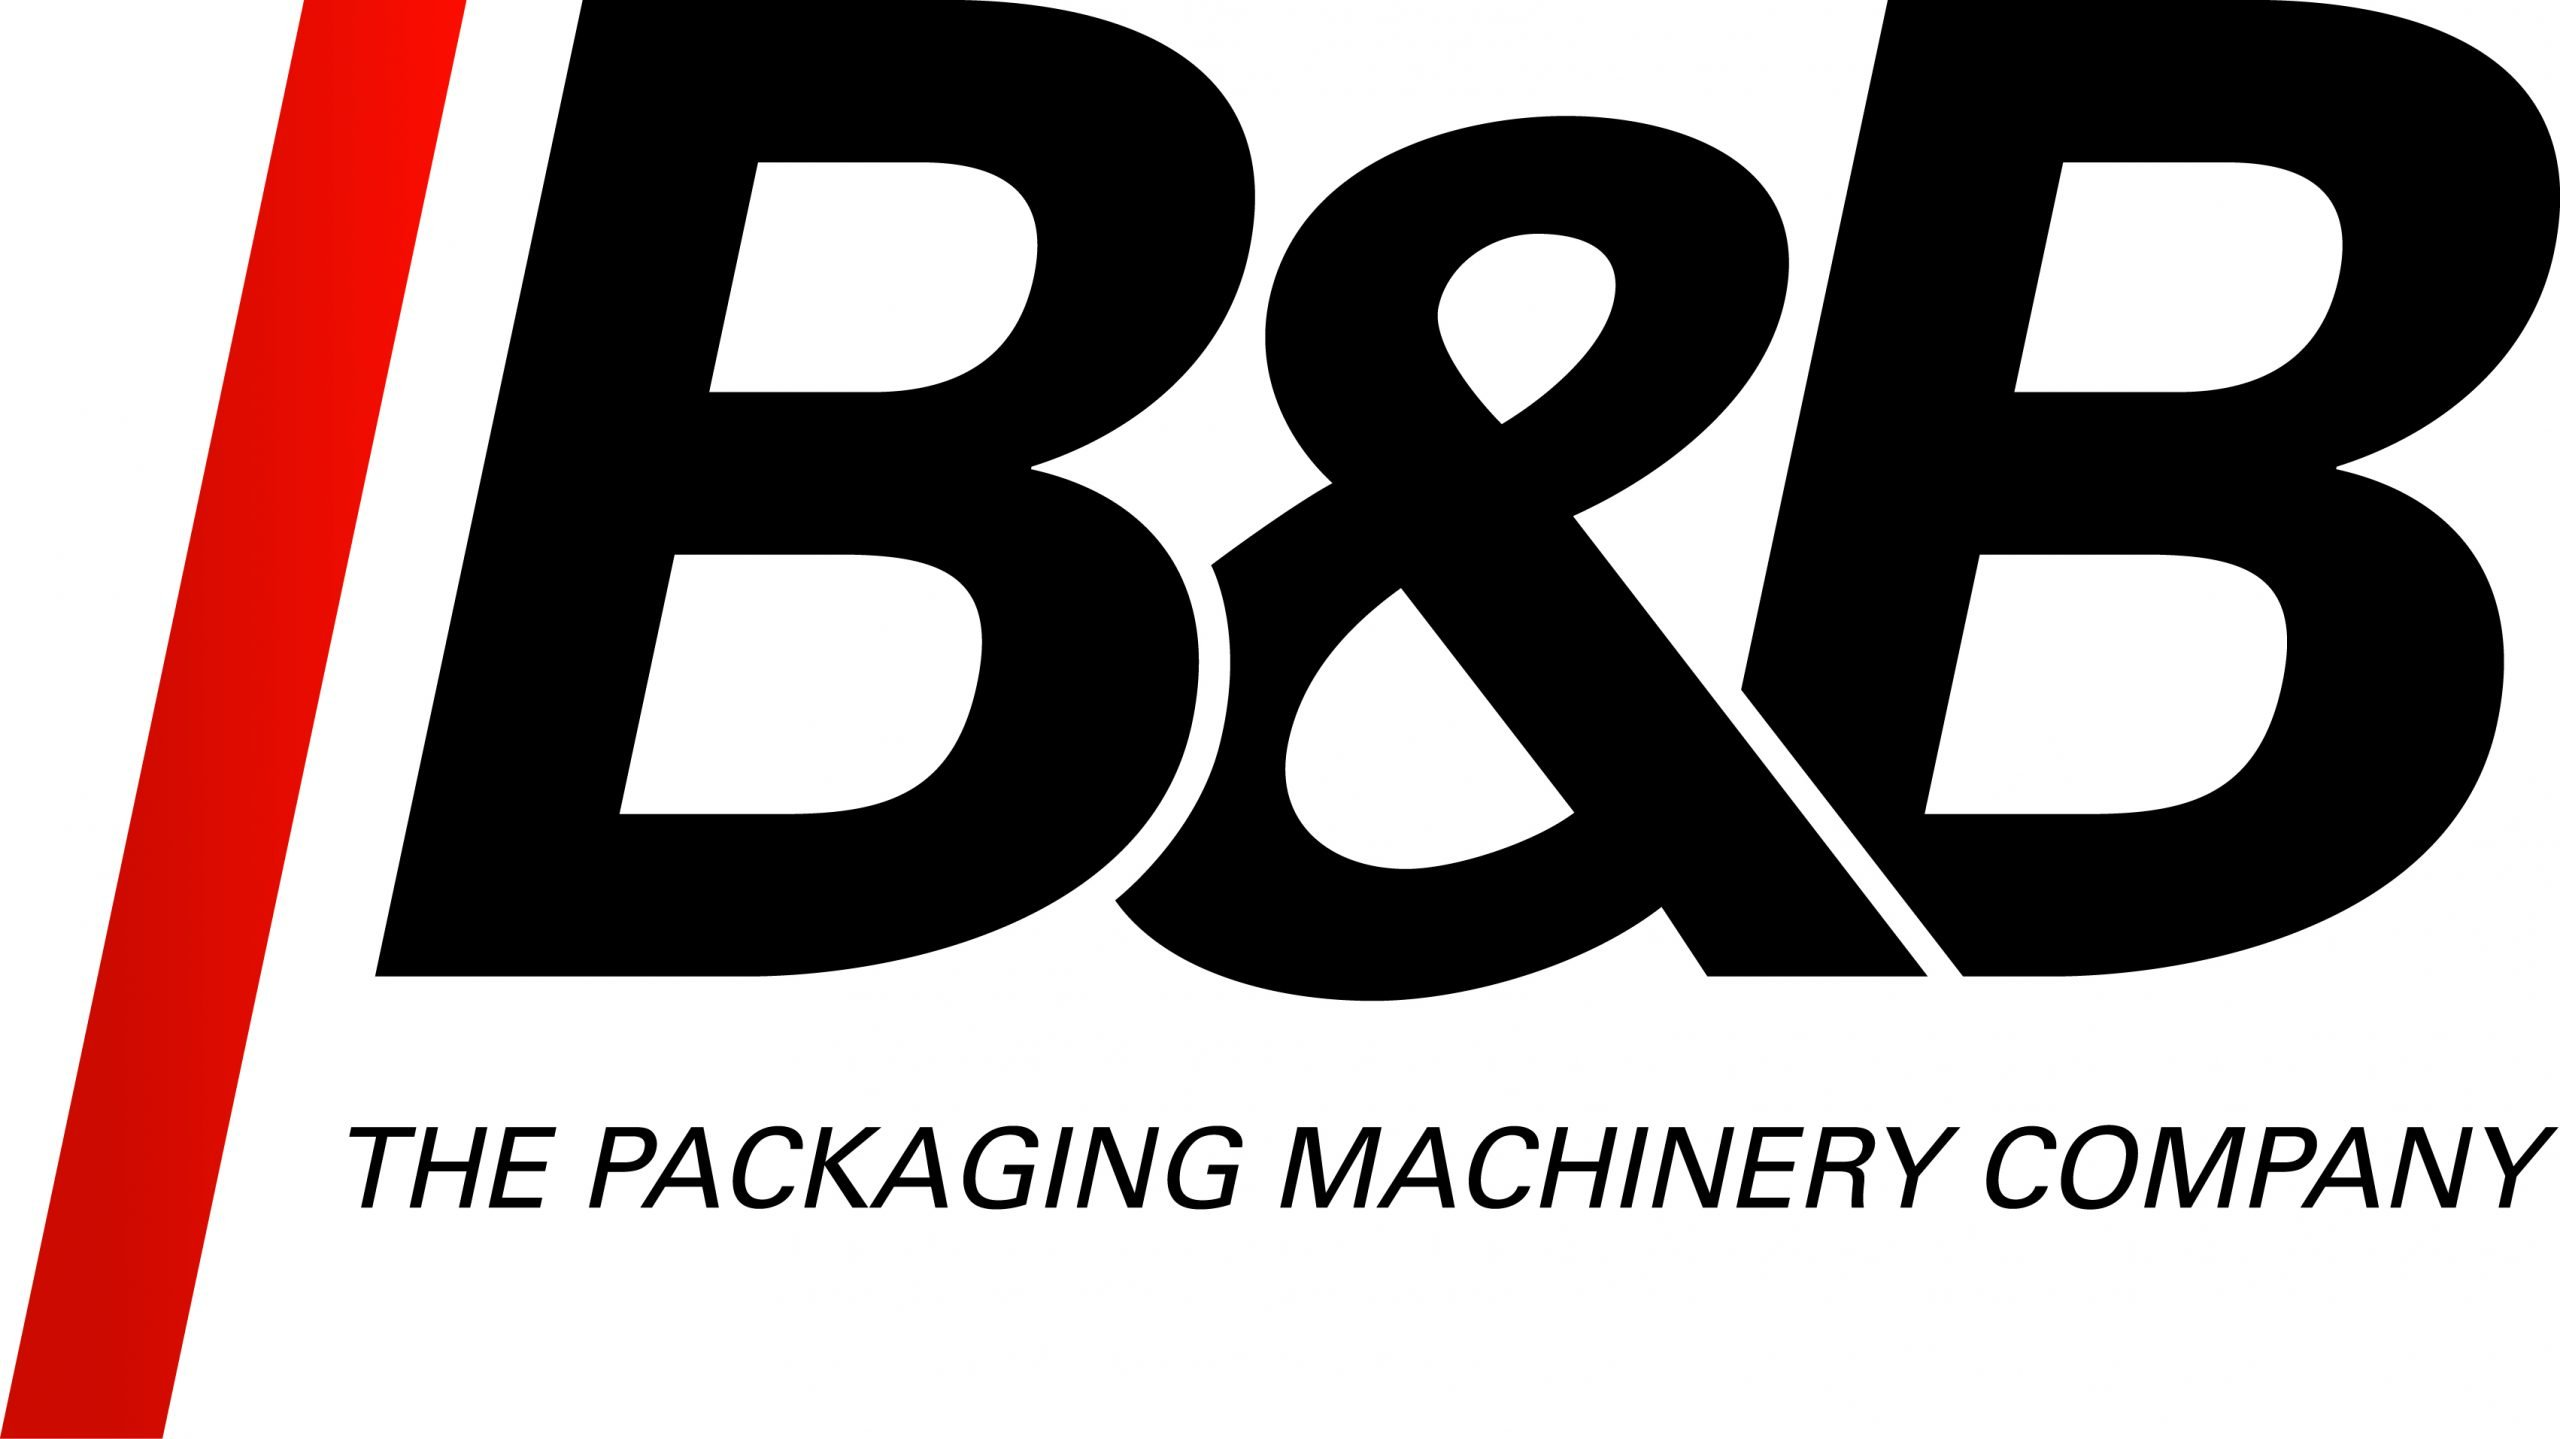 B&B The Packaging Machinery Company